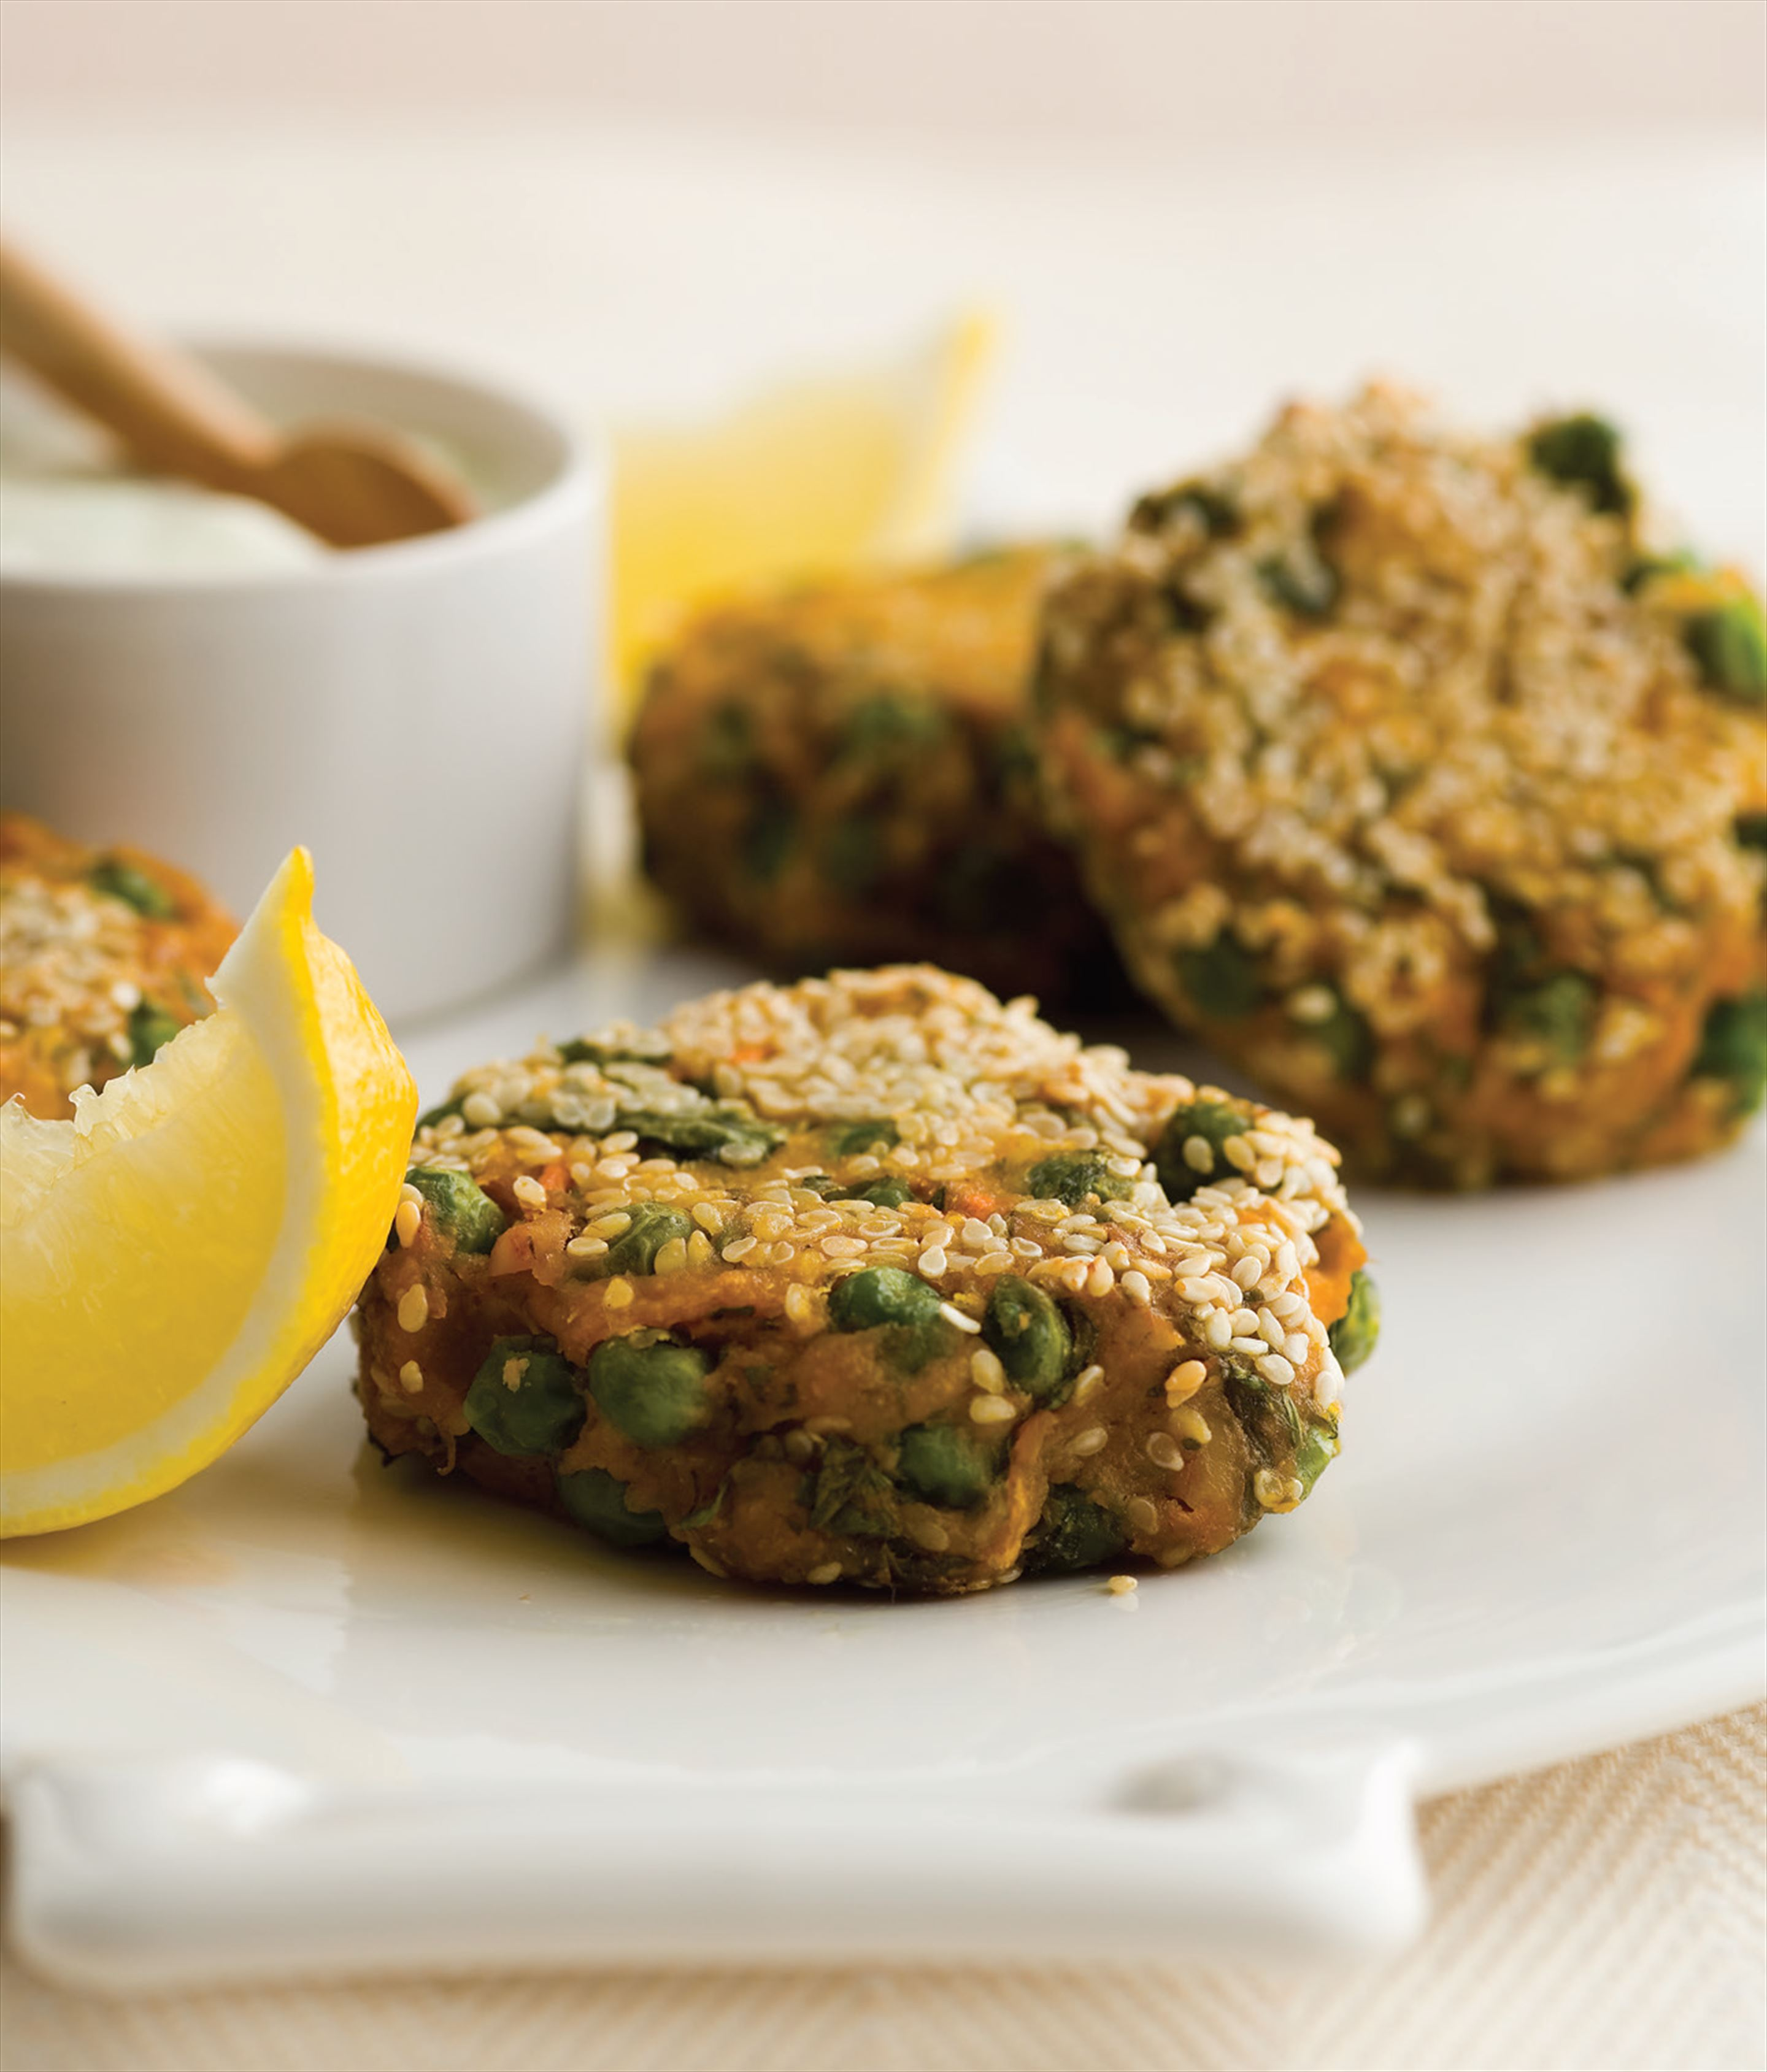 Tasty pumpkin, pea and walnut patties